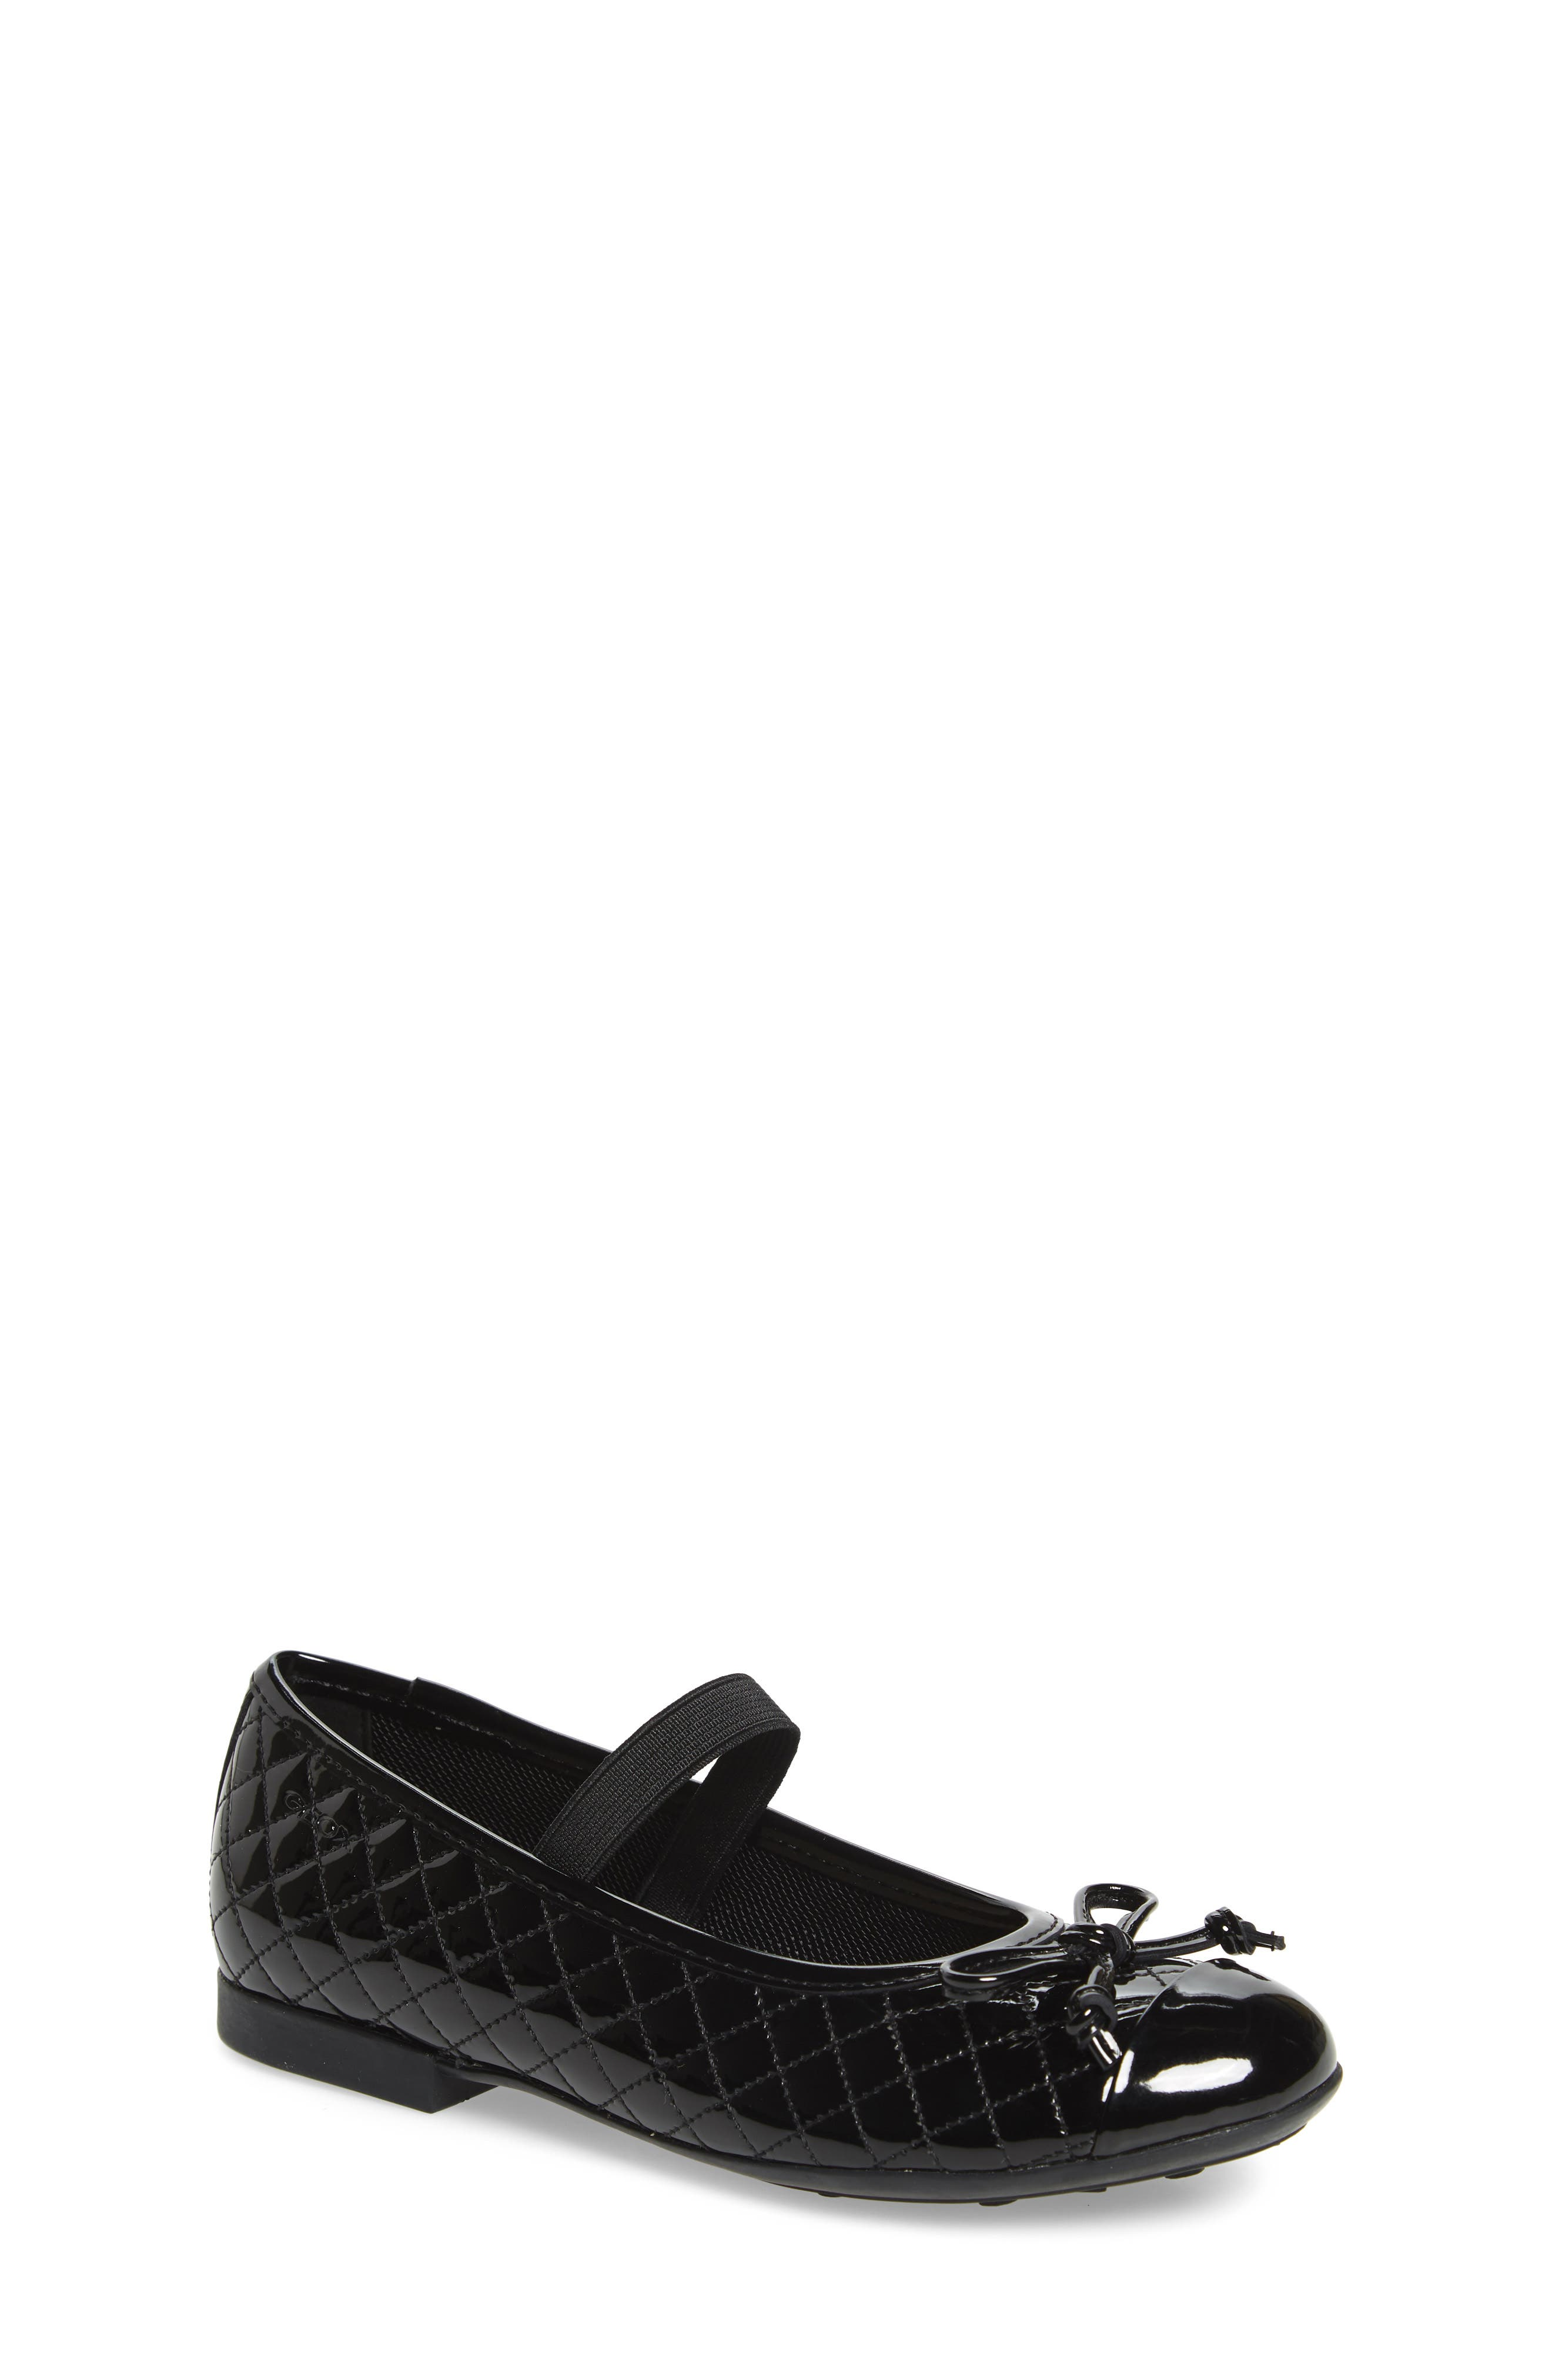 GEOX 'Plie' Mary Jane Flat, Main, color, BLACK/ BLACK